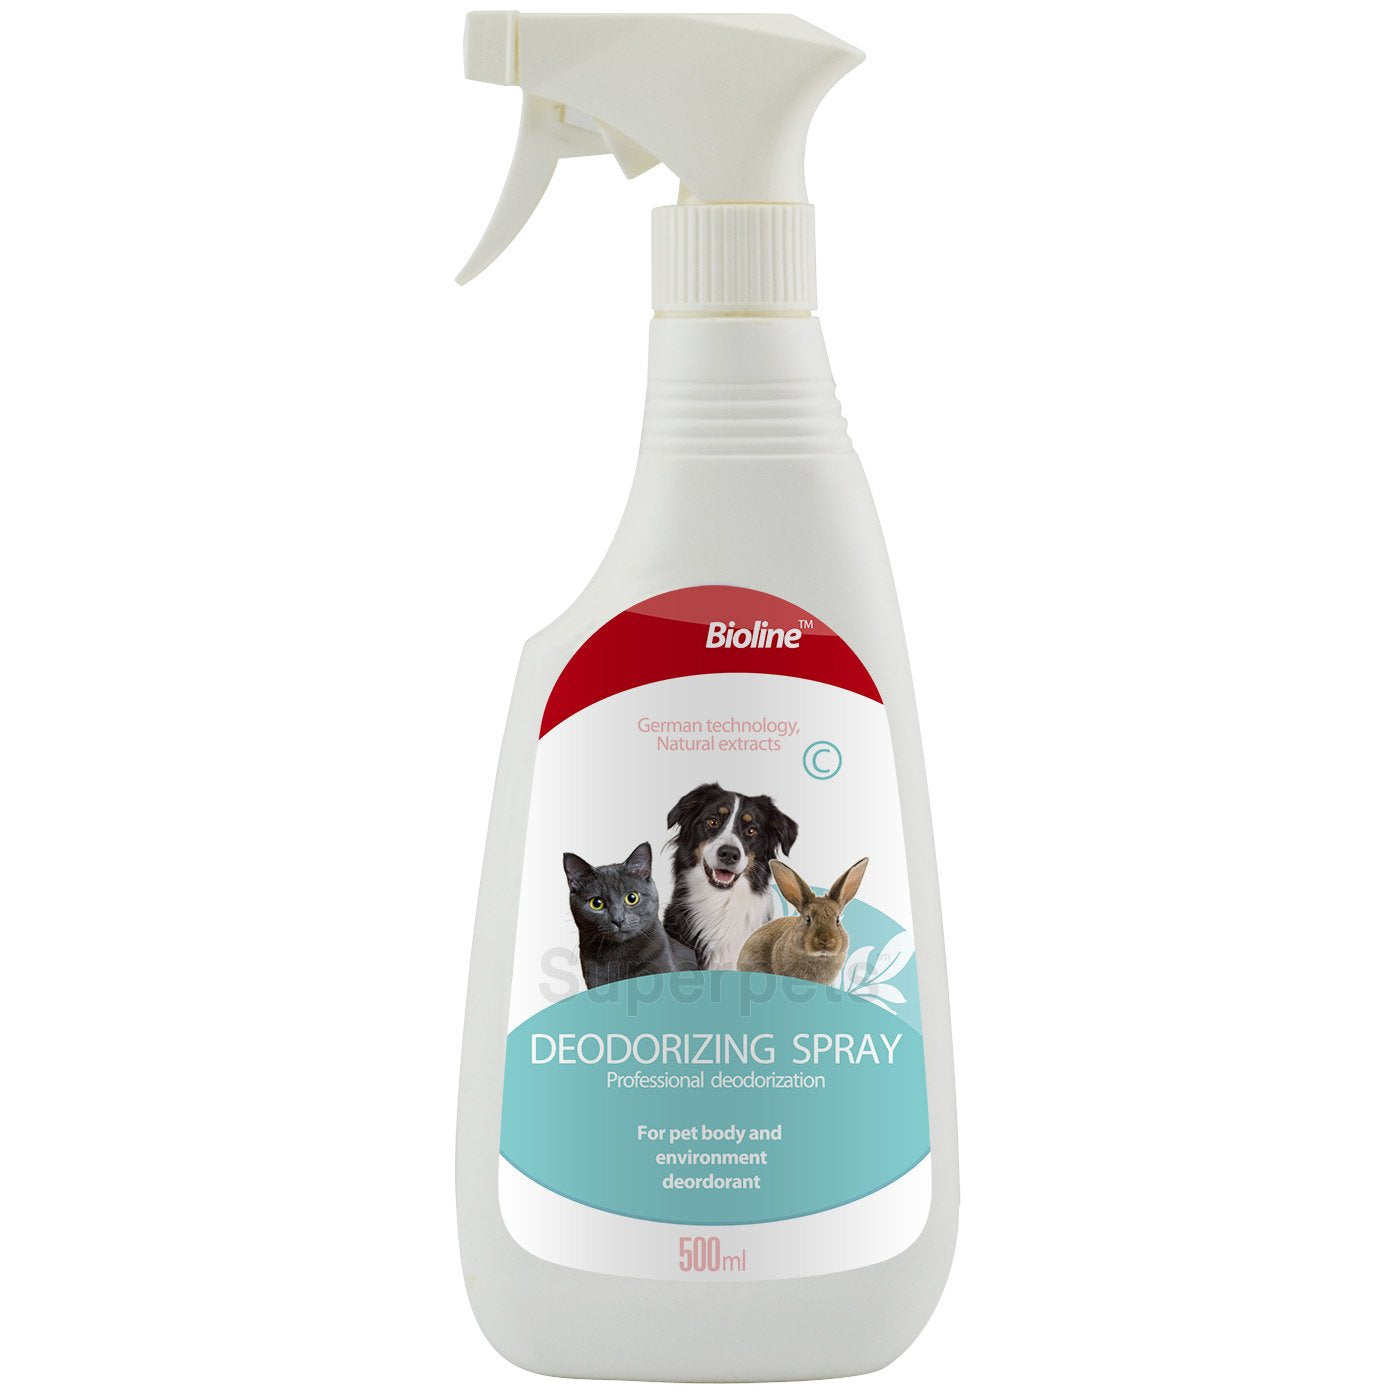 Bioline Professional Deodorizing Spray for Dog and Cats 500ml - pet-club-india